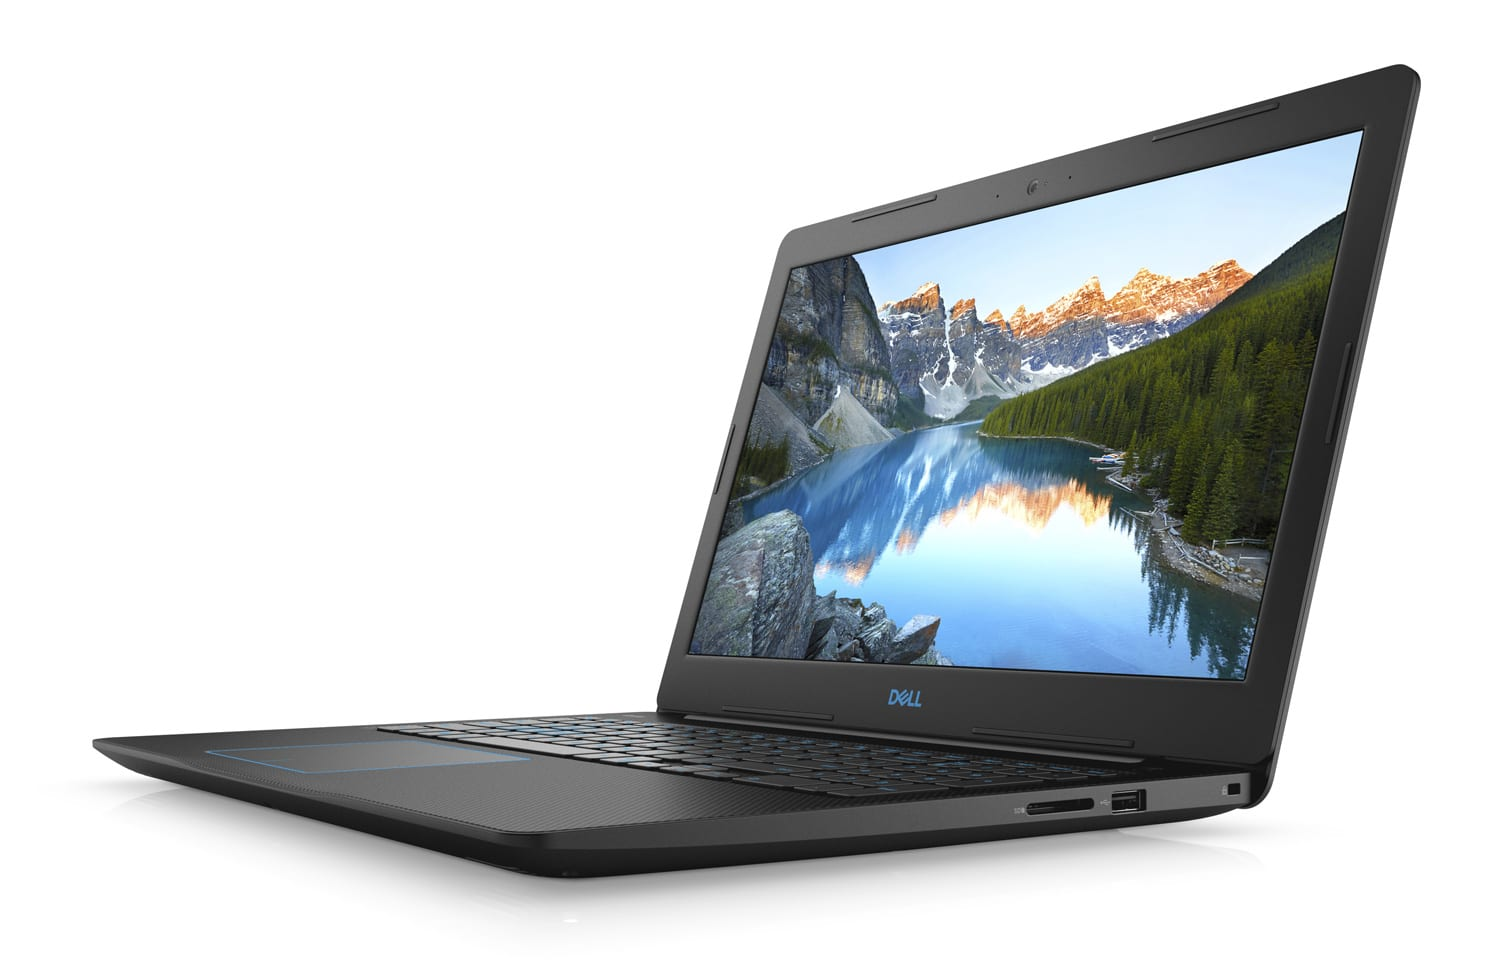 "Dell Inspiron G3 15 3579, PC portable 15"" gamer rapide noir (989€)"